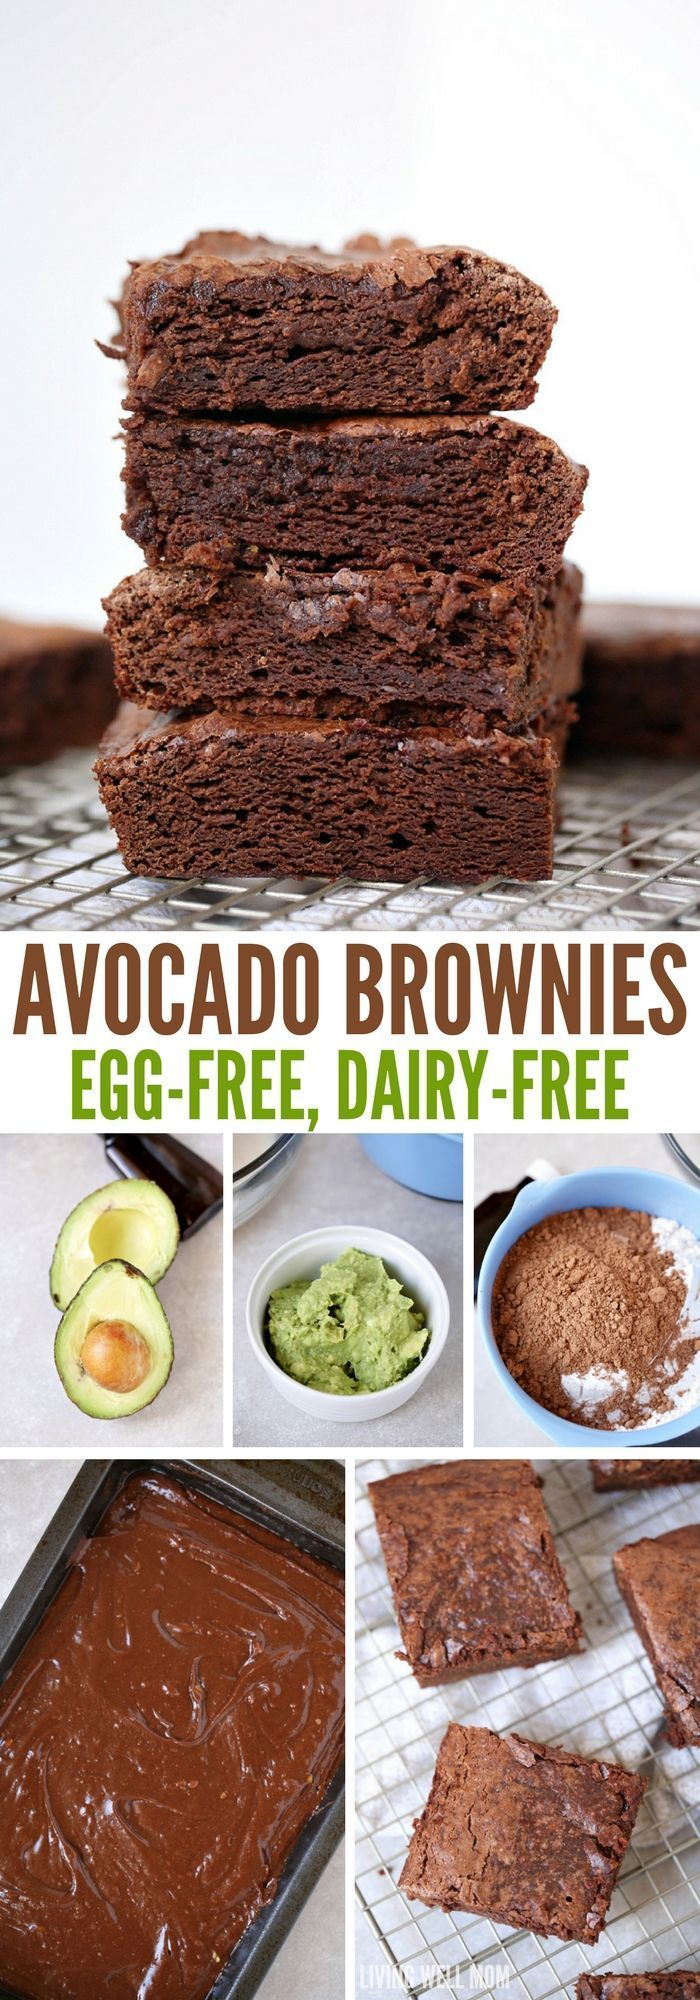 Brownies Super-Moist Avocado Brownies are mouthwateringly delicious! Kids love this egg-free brownie recipe too and with just 10 minutes prep time and 30 minutes to bake, you can enjoy this healthier chocolate dessert in no time!Super-Moist Avocado Brownies are mouthwateringly delicious! Kids love this egg-free brown...